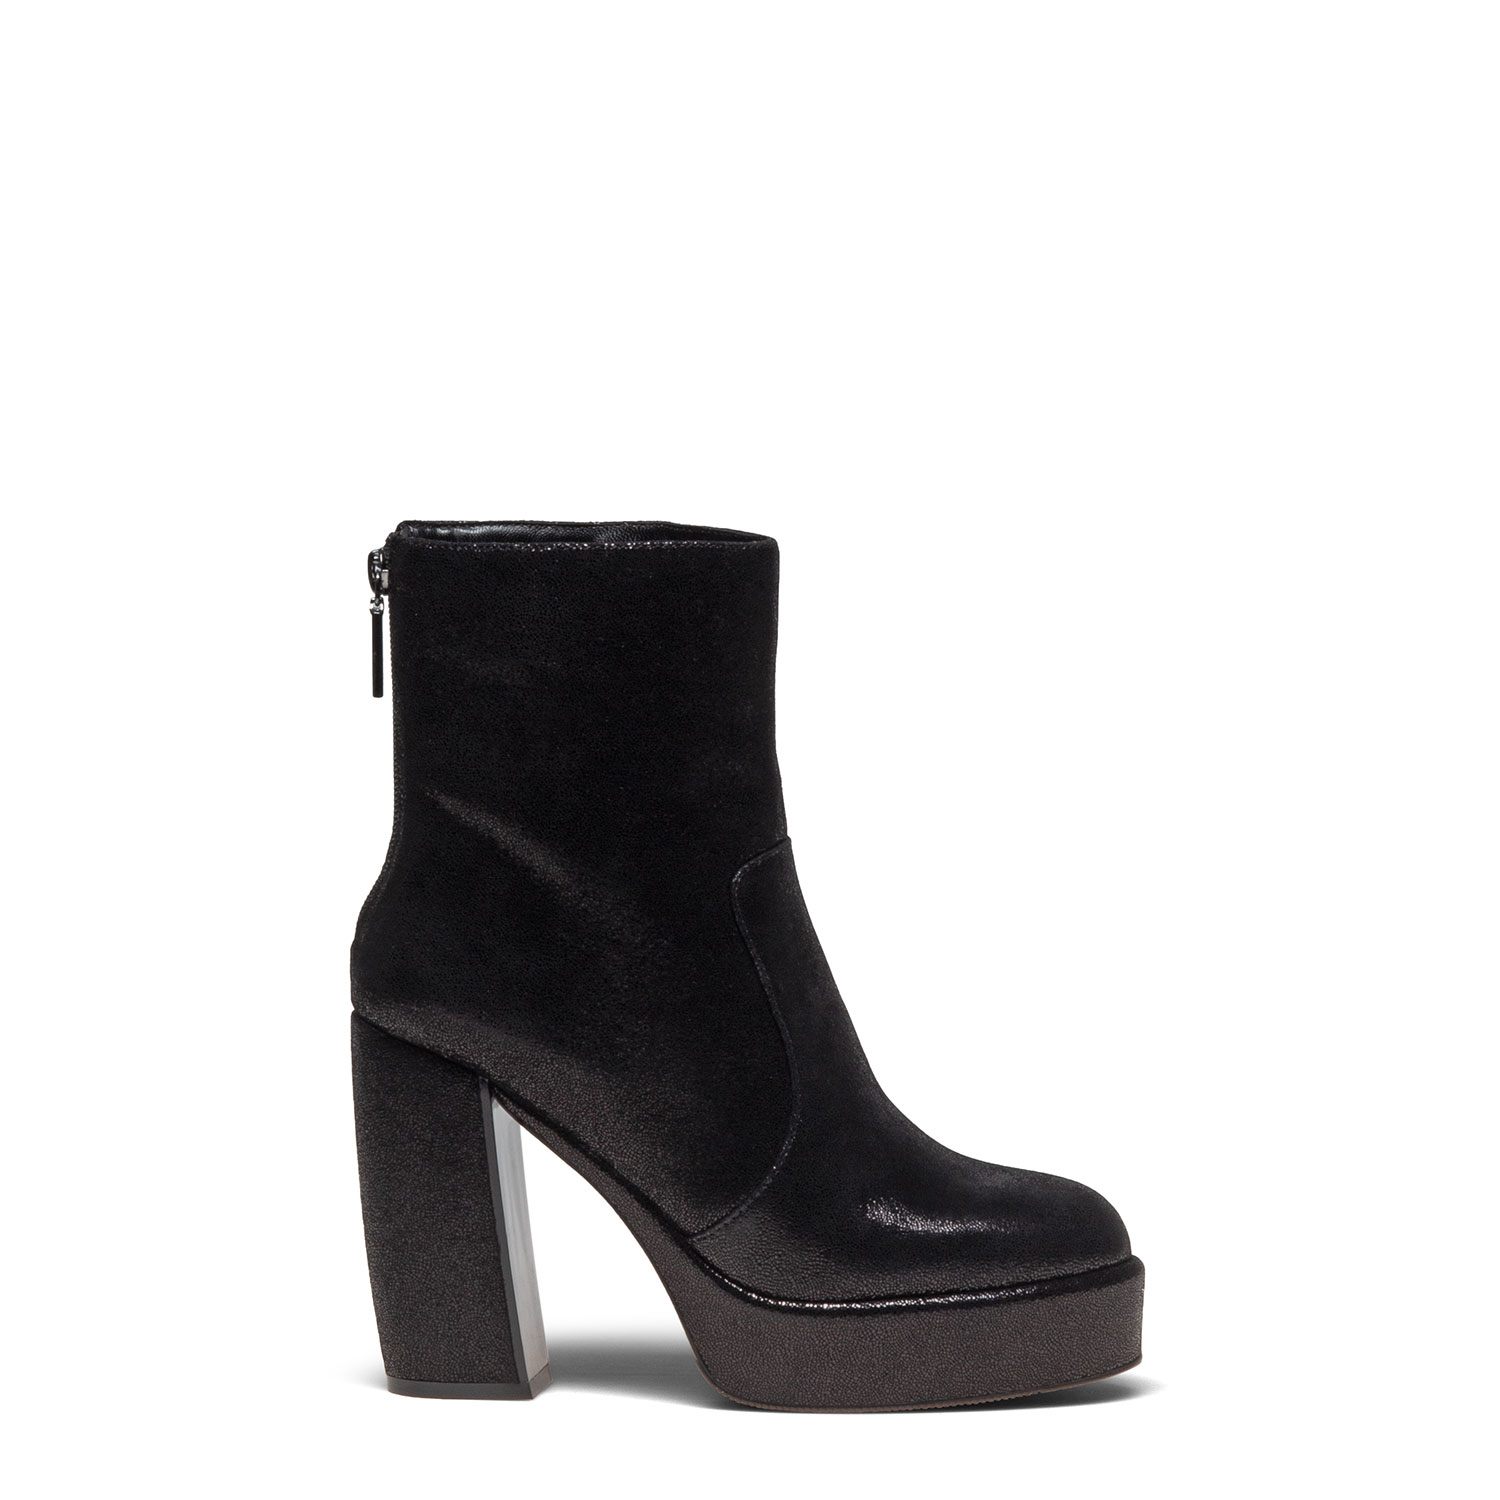 Women's ankle boots PAZOLINI GL-AAL1-1